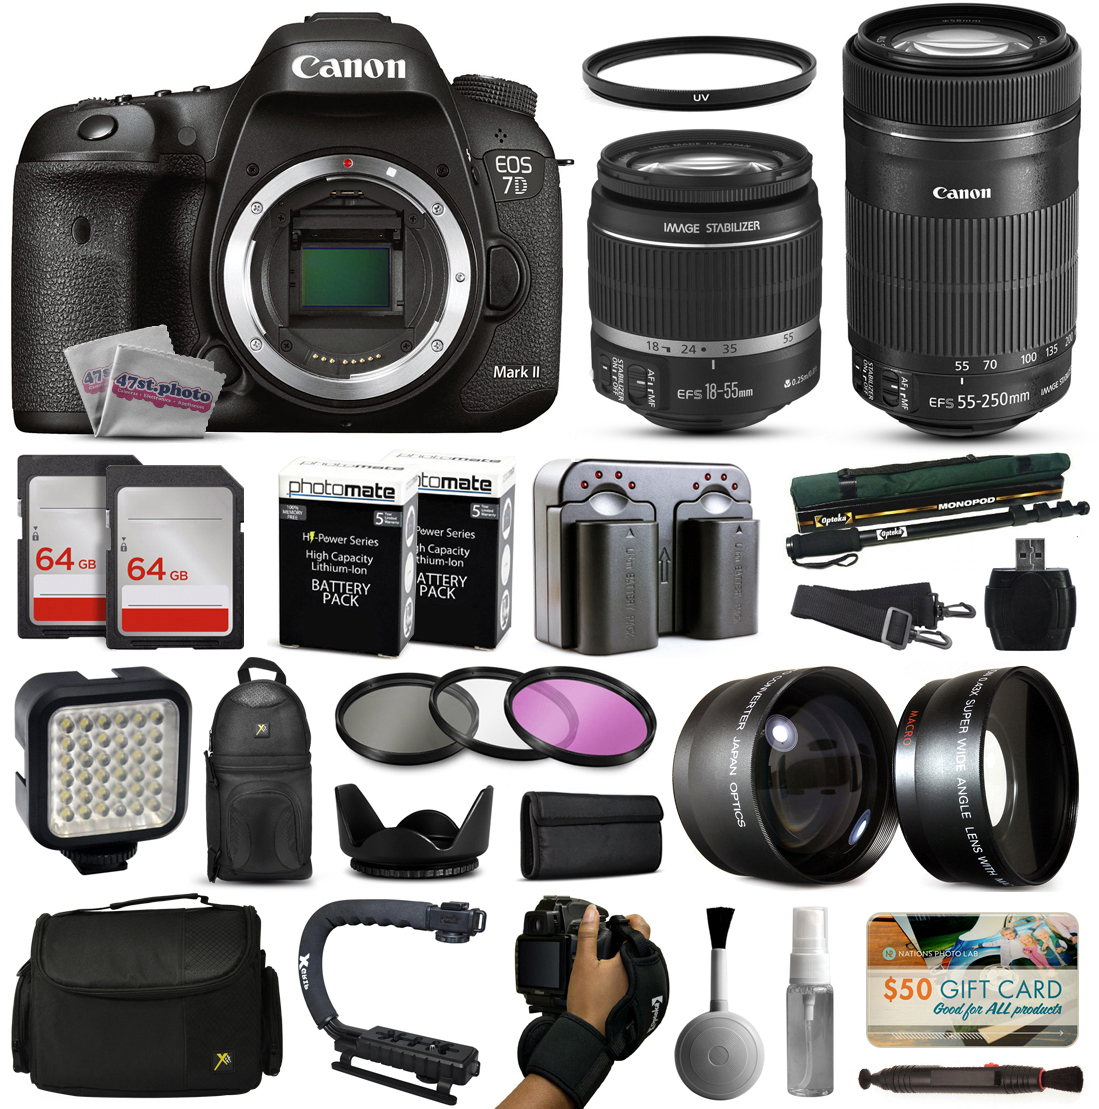 Canon EOS 7D Mark 2 DSLR Digital Camera + 18-55mm IS II + 55-250mm IS STM Lens + 128GB Memory + 2 Batteries + Charger + LED Video Light + Backpack + Case + Filters + Auxiliary Lenses + More CN7DMII185555250STMK2